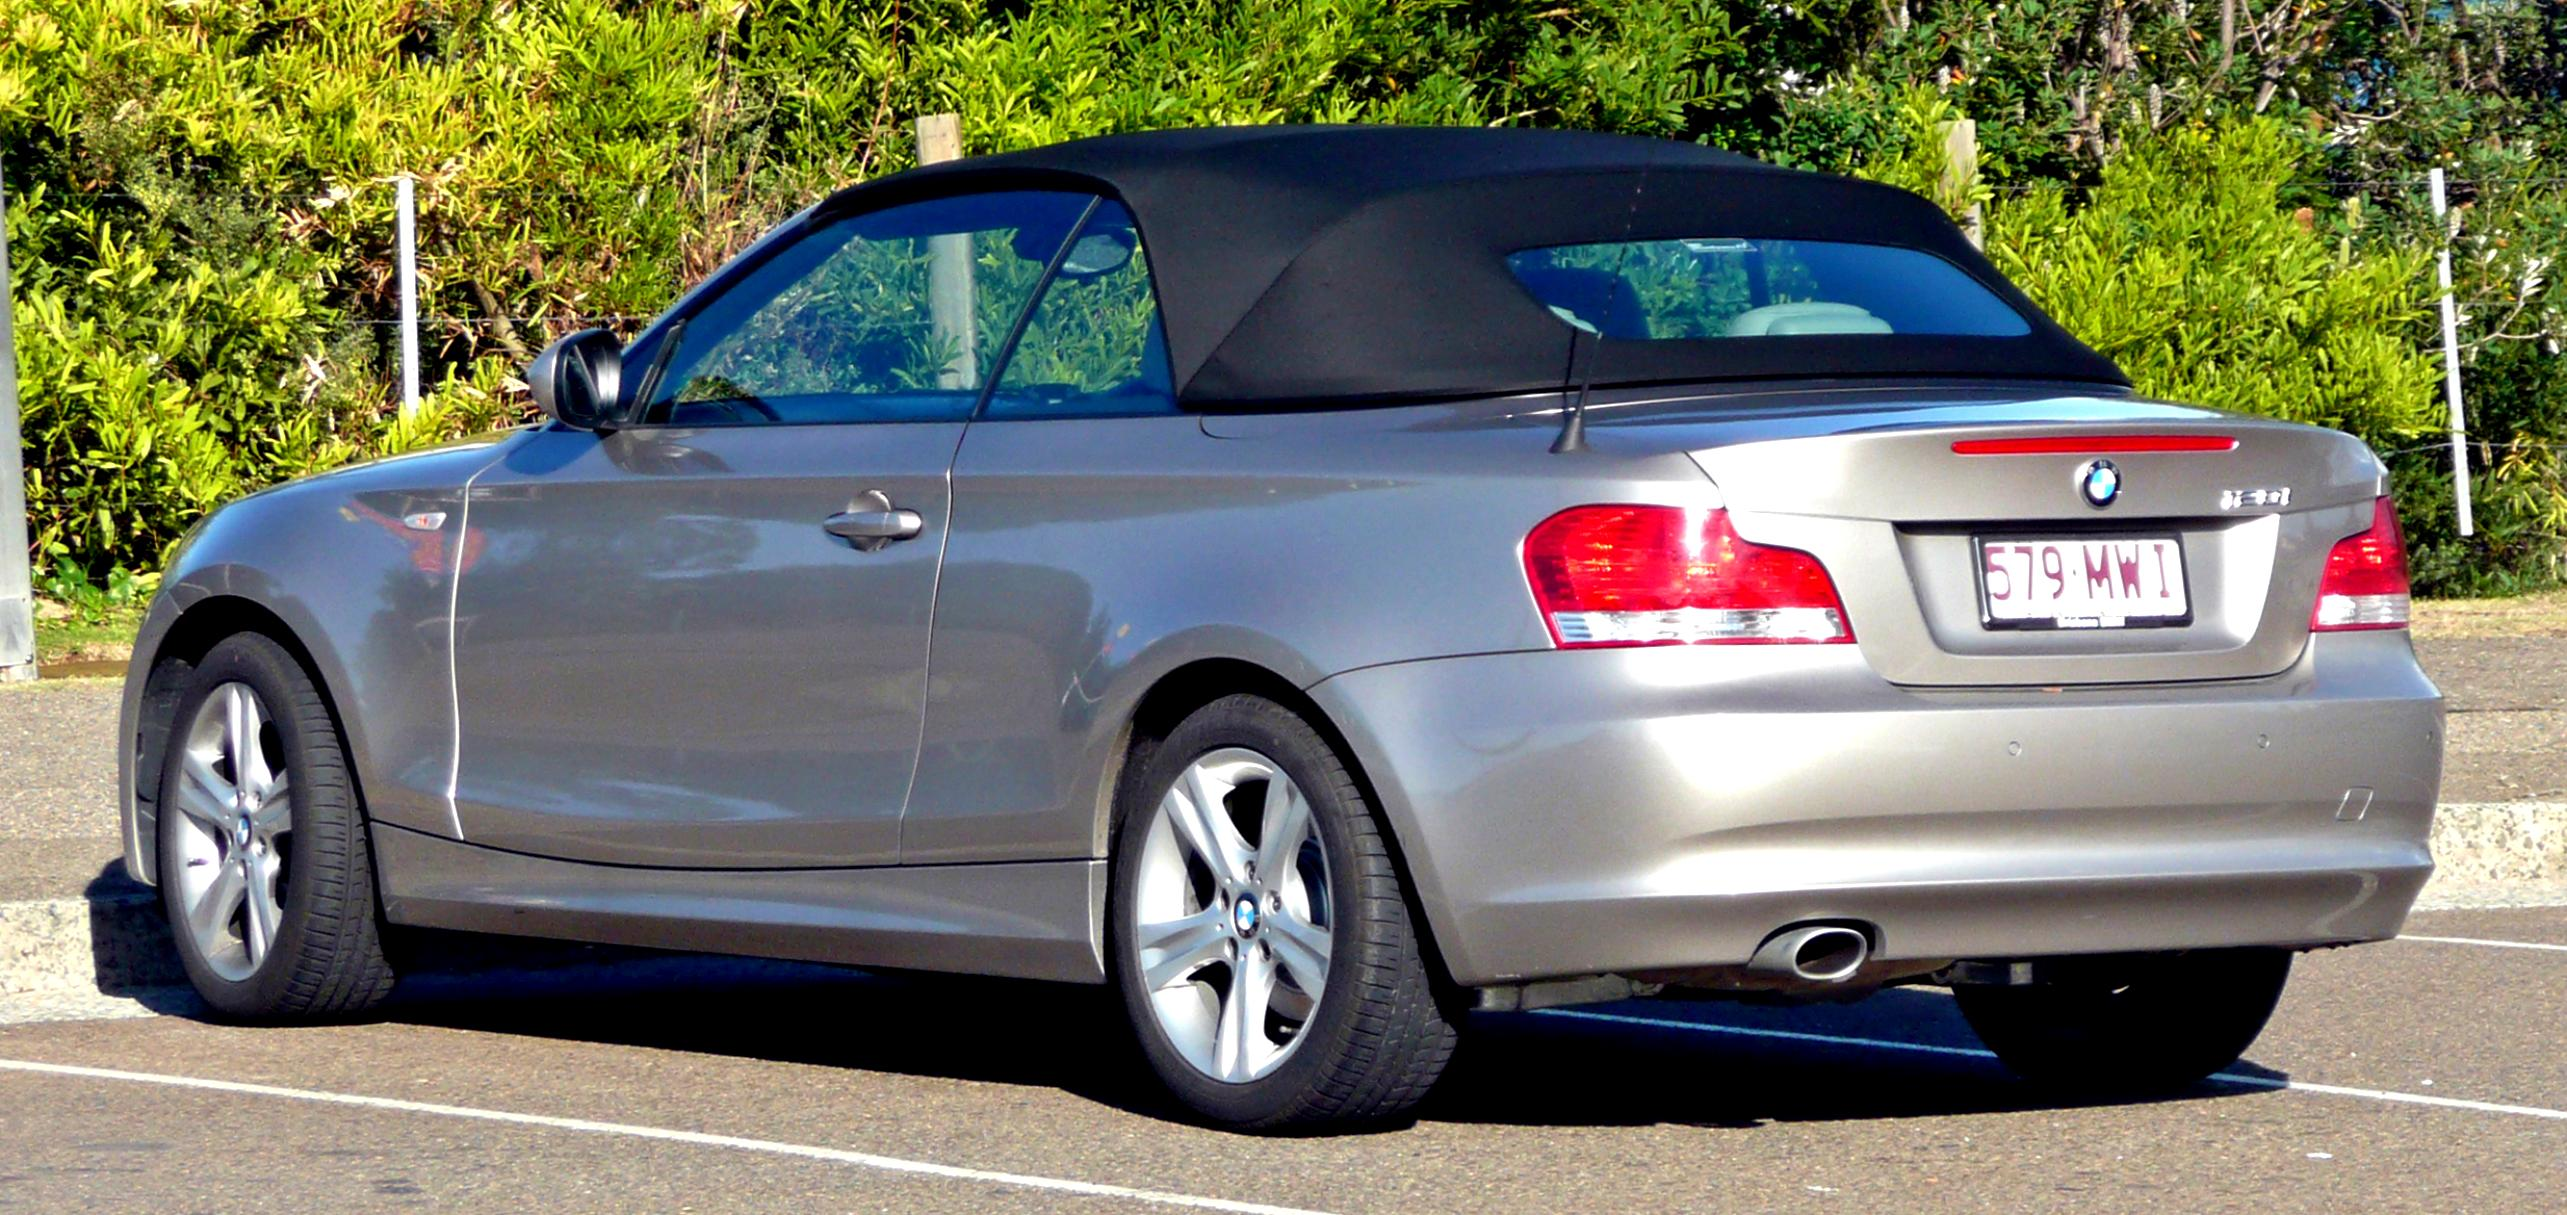 BMW 1 Series Cabriolet E88 2010 #2